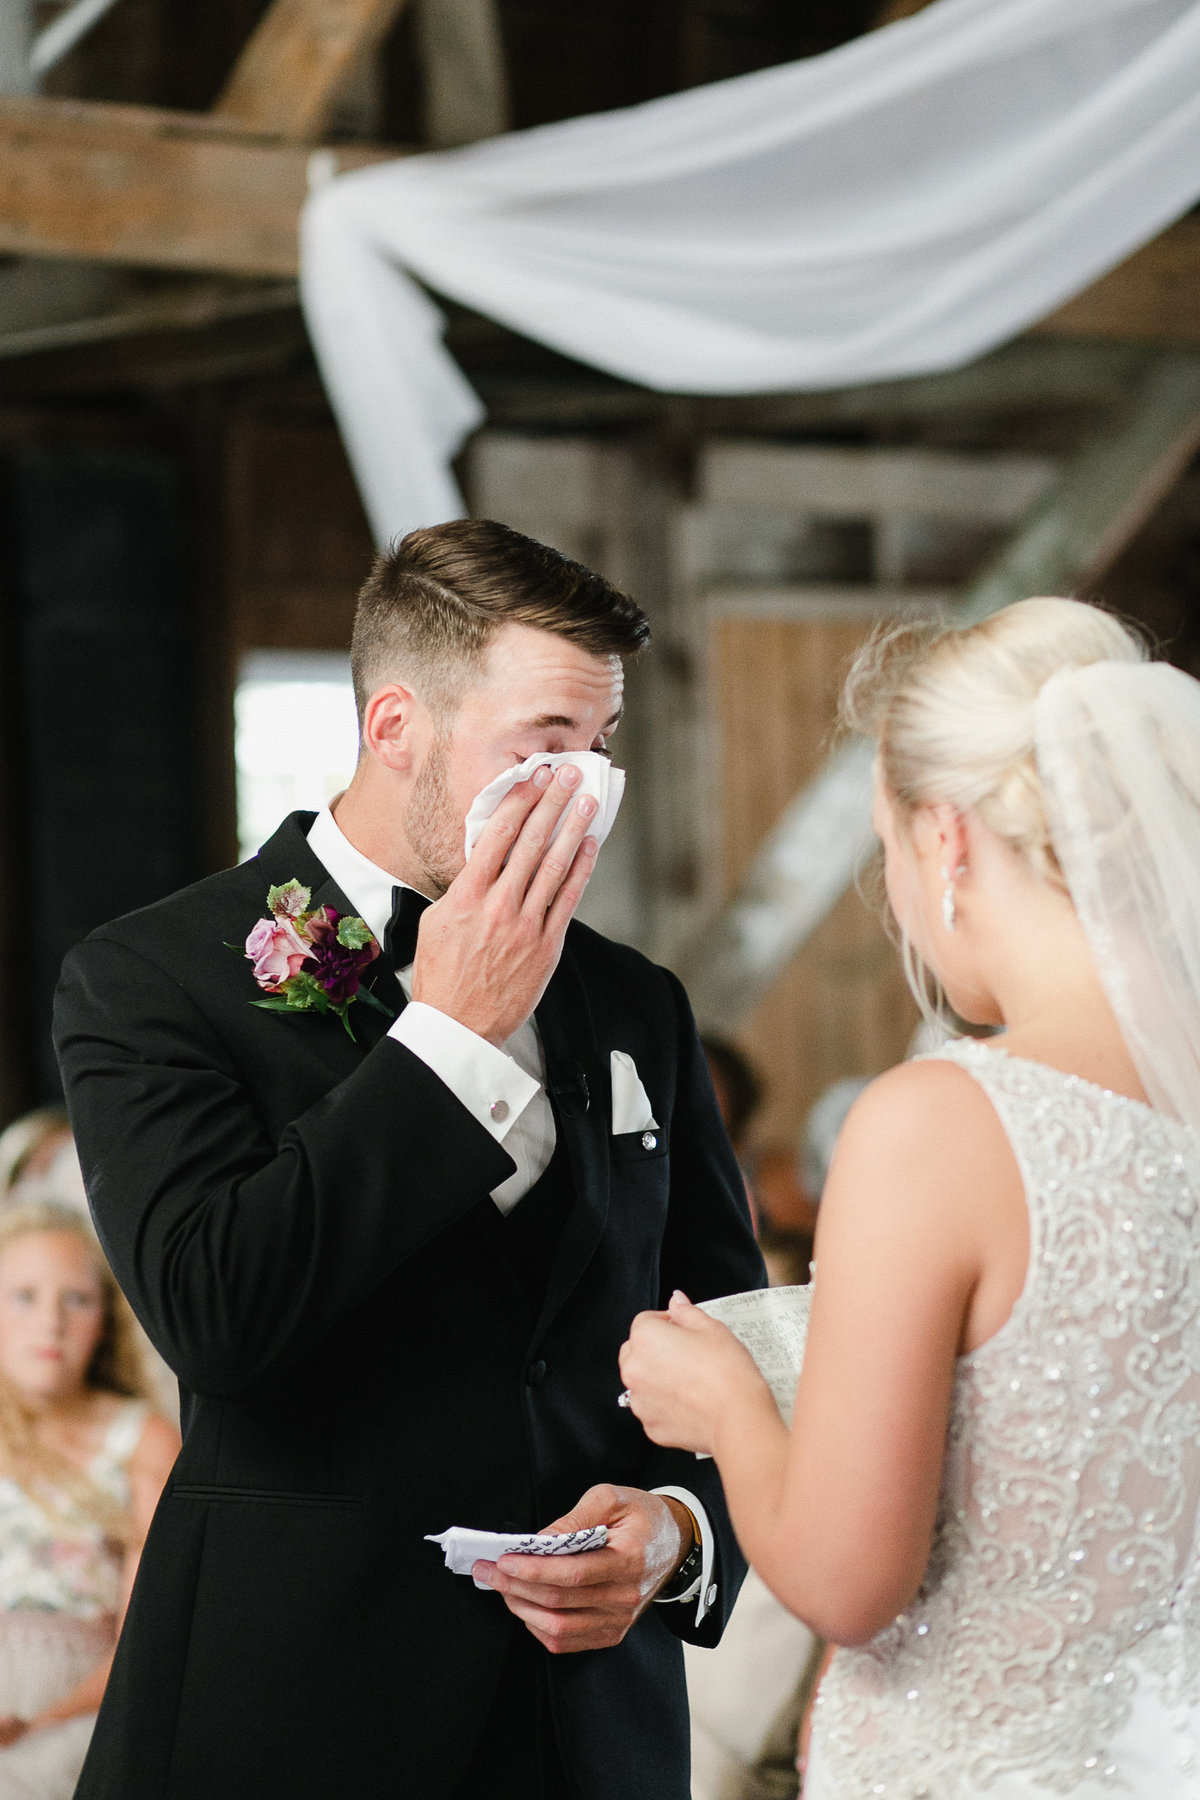 wedding photographer peoria il stephanie bartman-34